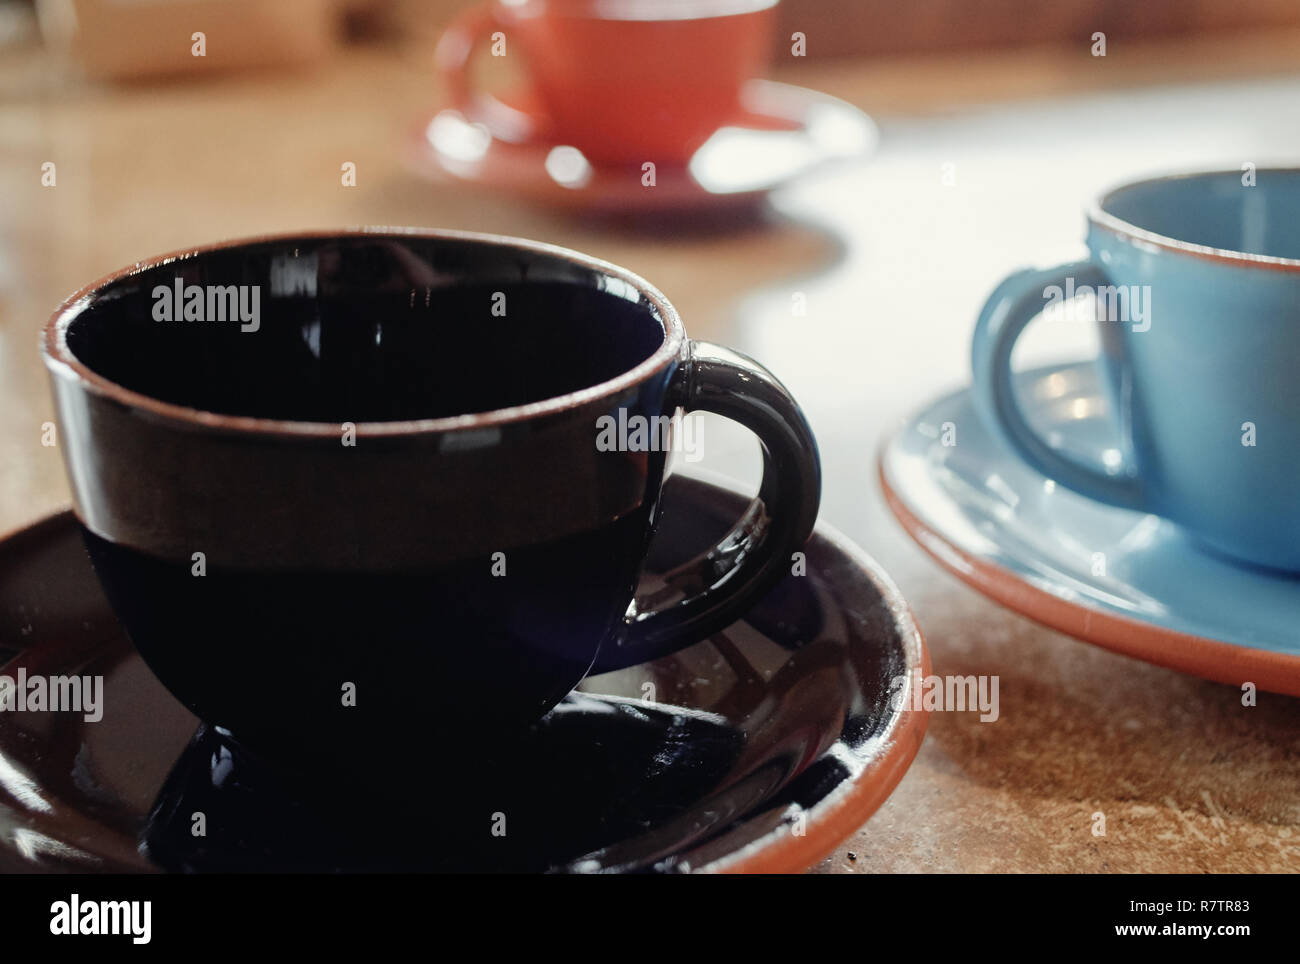 3 coffee cups and saucers brightly lit on table - Stock Image